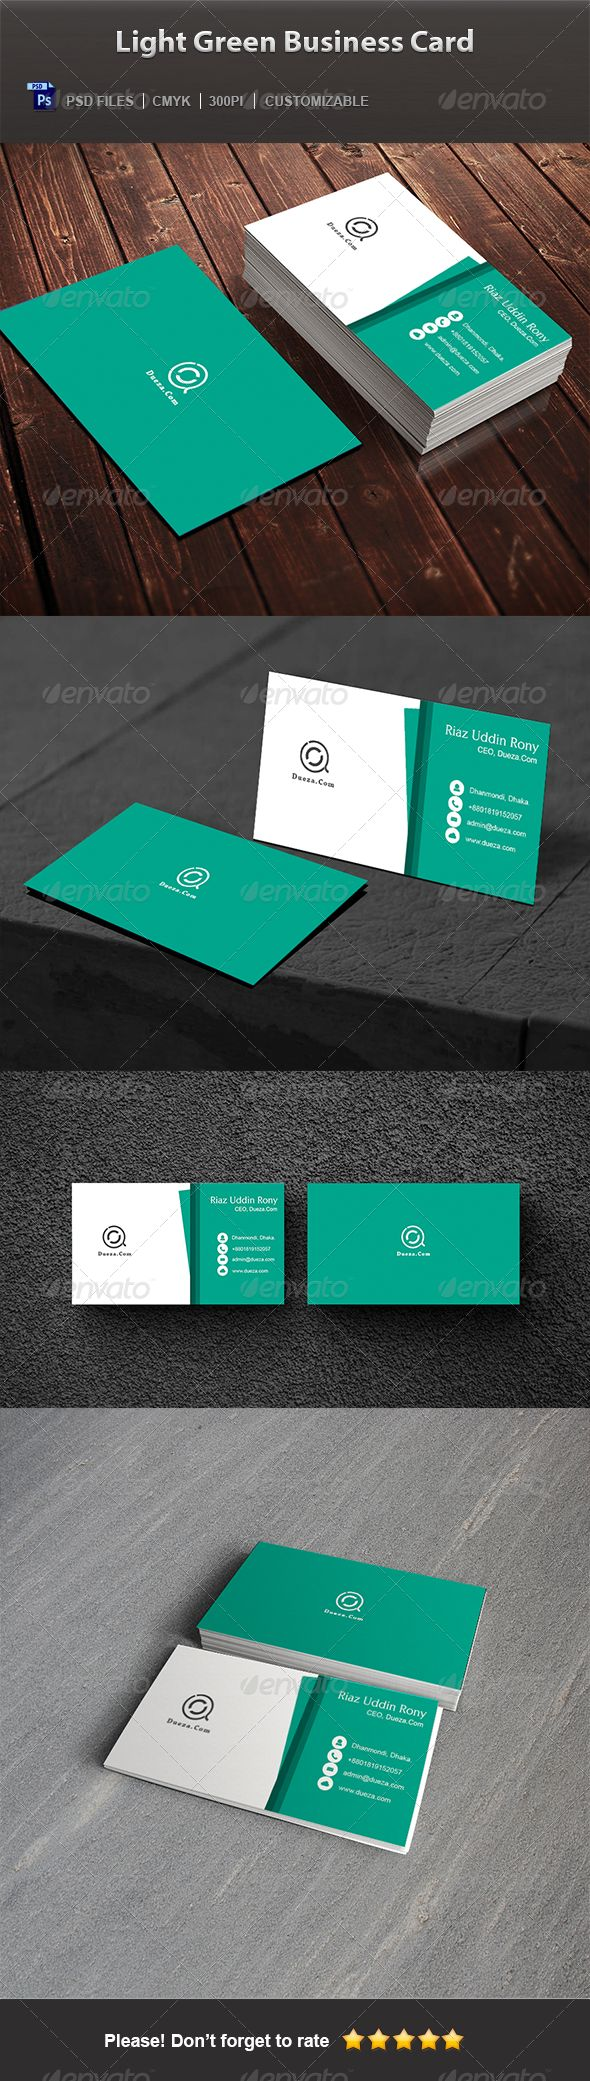 28 best business cards images on pinterest business cards light green business card magicingreecefo Choice Image